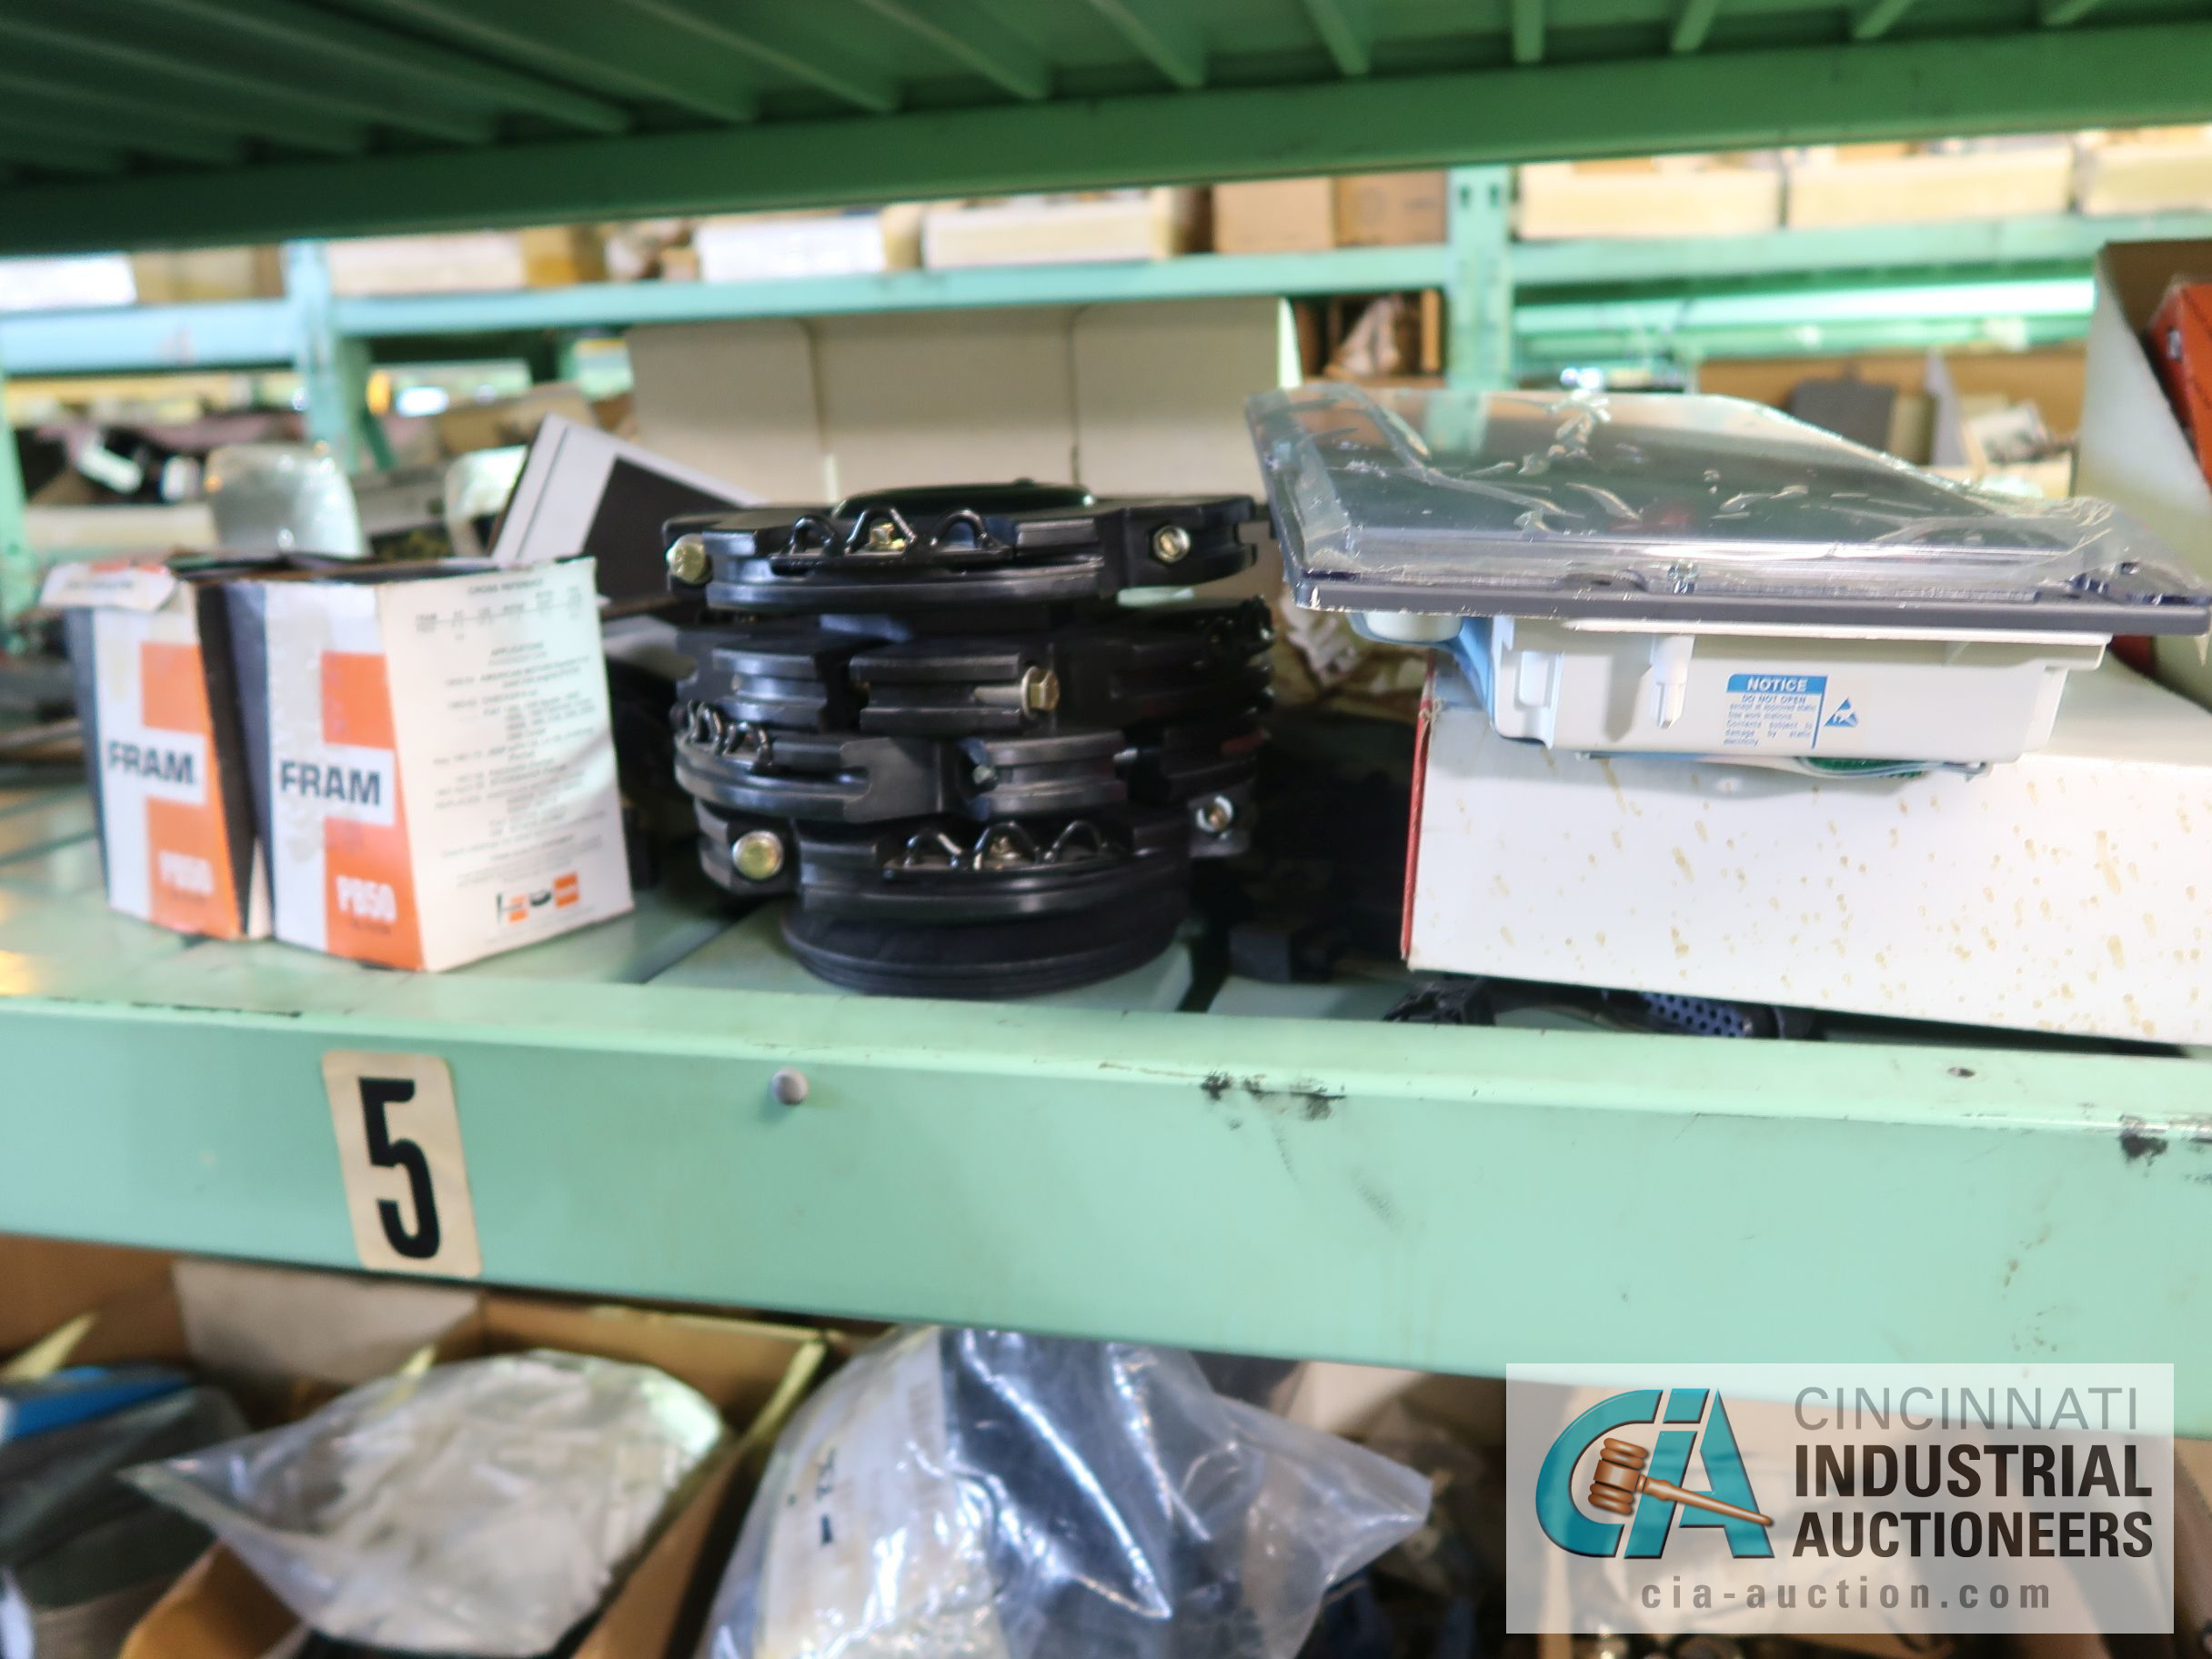 CONTENTS OF (5) RACKS INCLUDING MISCELLANEOUS AUTOMOTIVE PARTS, LIGHTS, FILTERS, ENGINE PARTS, RIMS, - Image 22 of 29